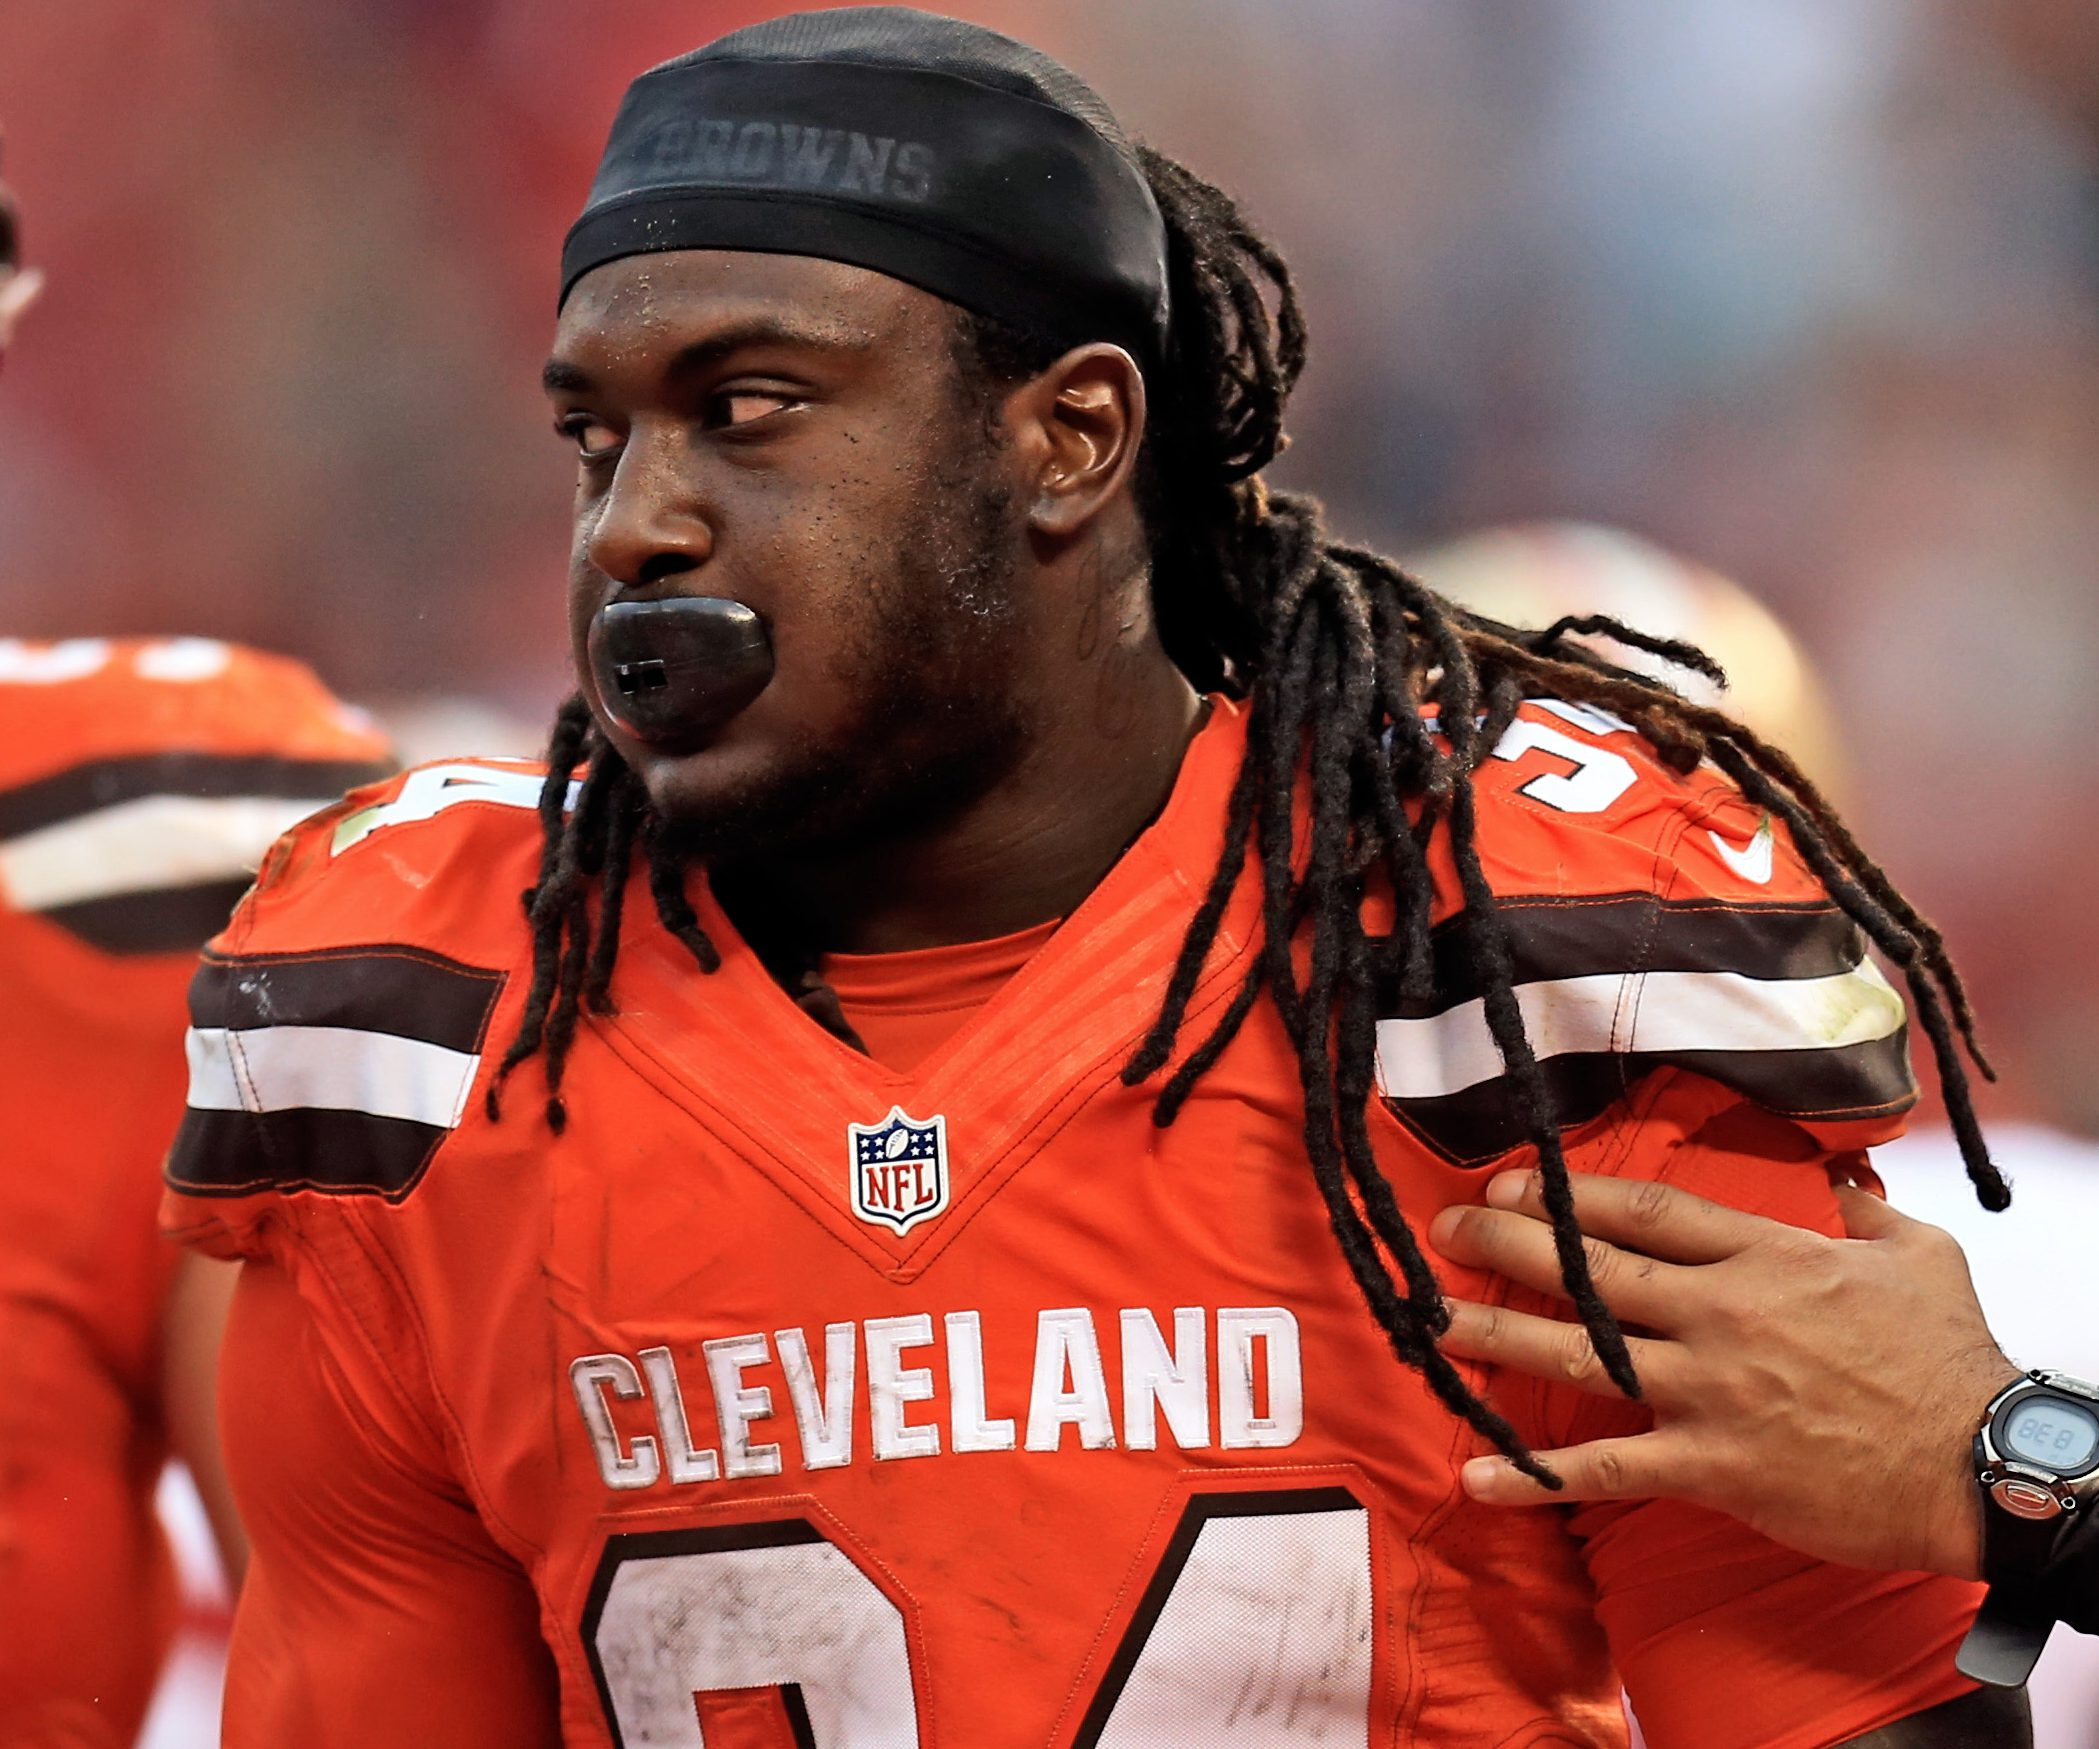 Isaiah Crowell: